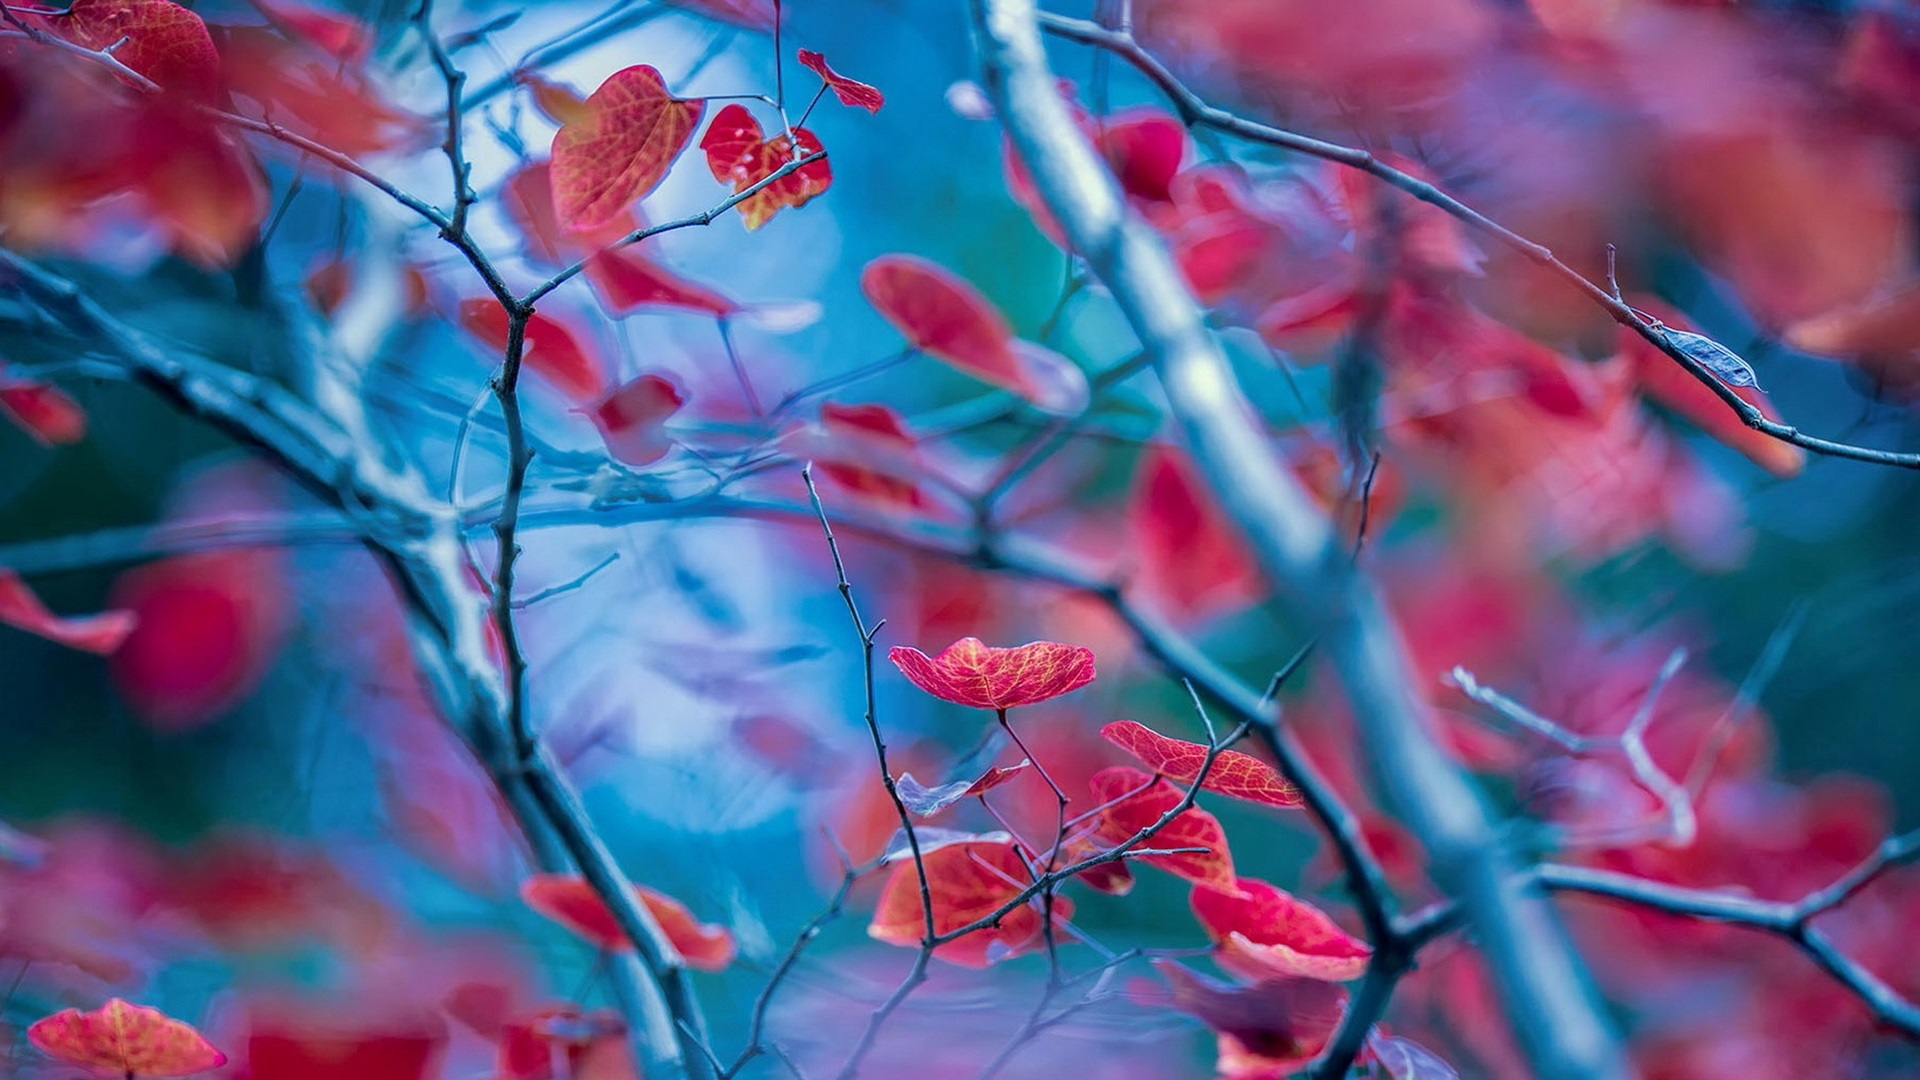 Wallpaper Red Leaves Twigs Autumn Blur Background 1920x1200 Hd Picture Image